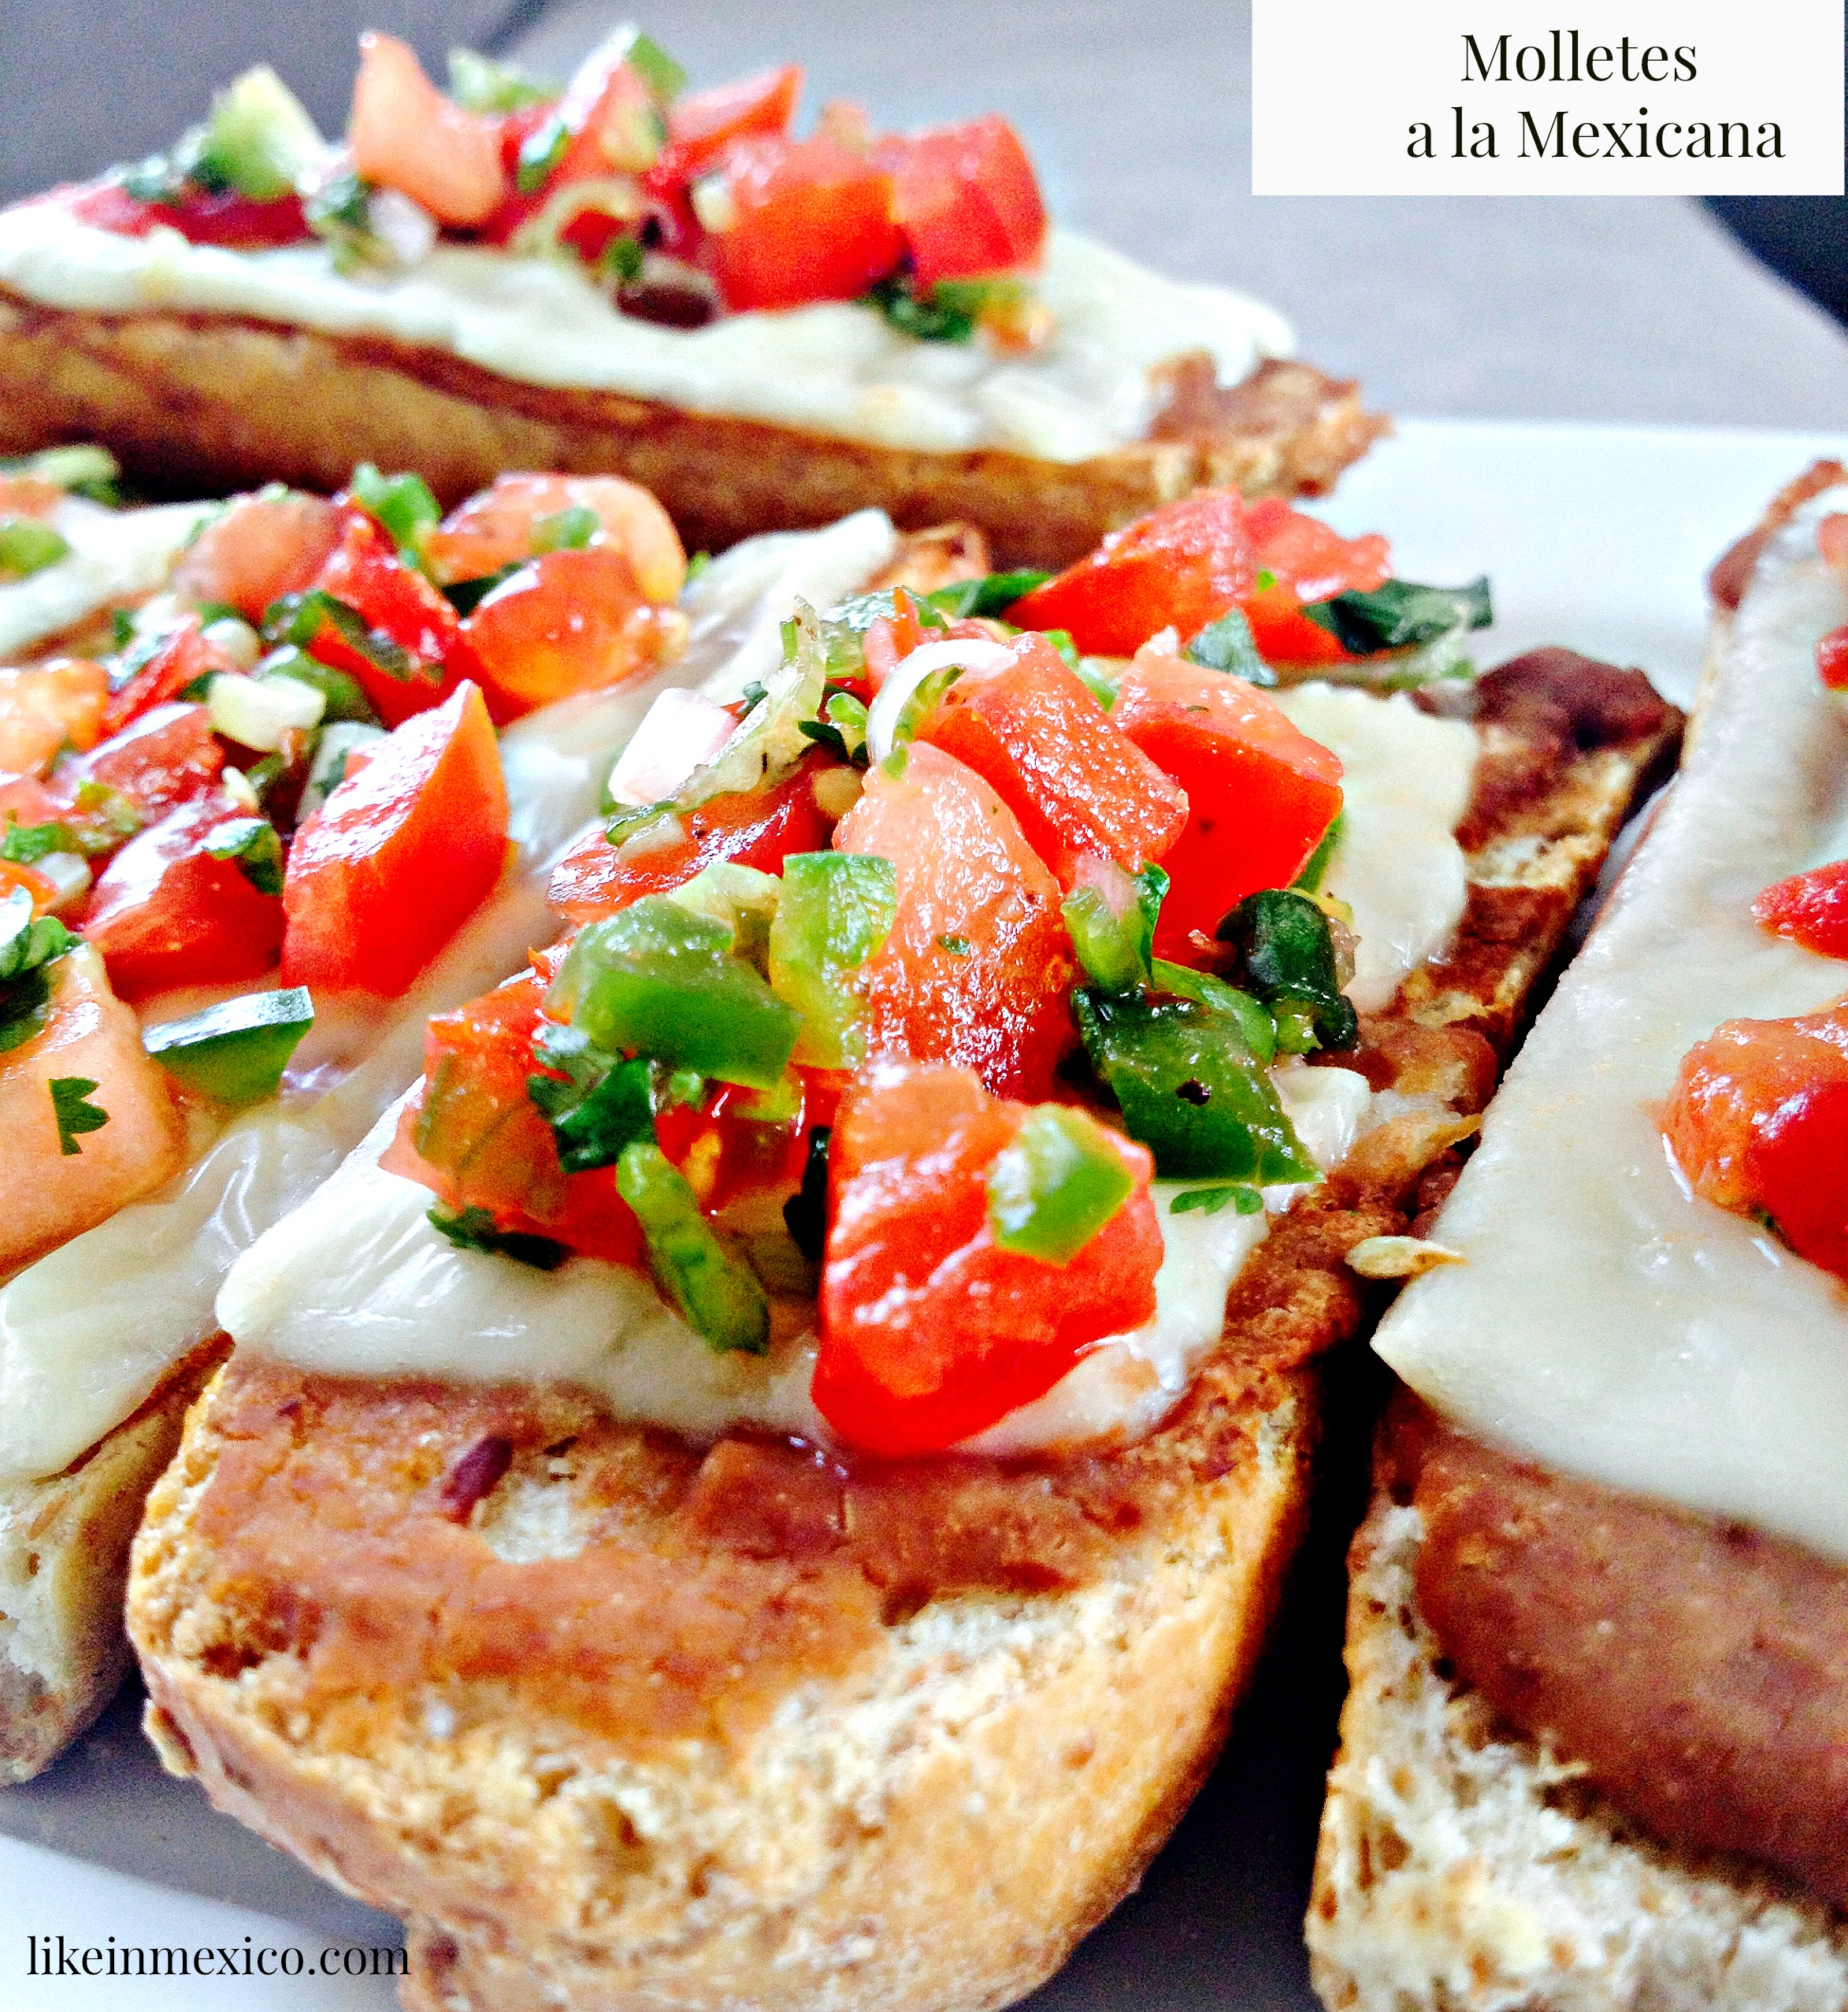 Mexican Breakfast: Molletes a la Mexicana |